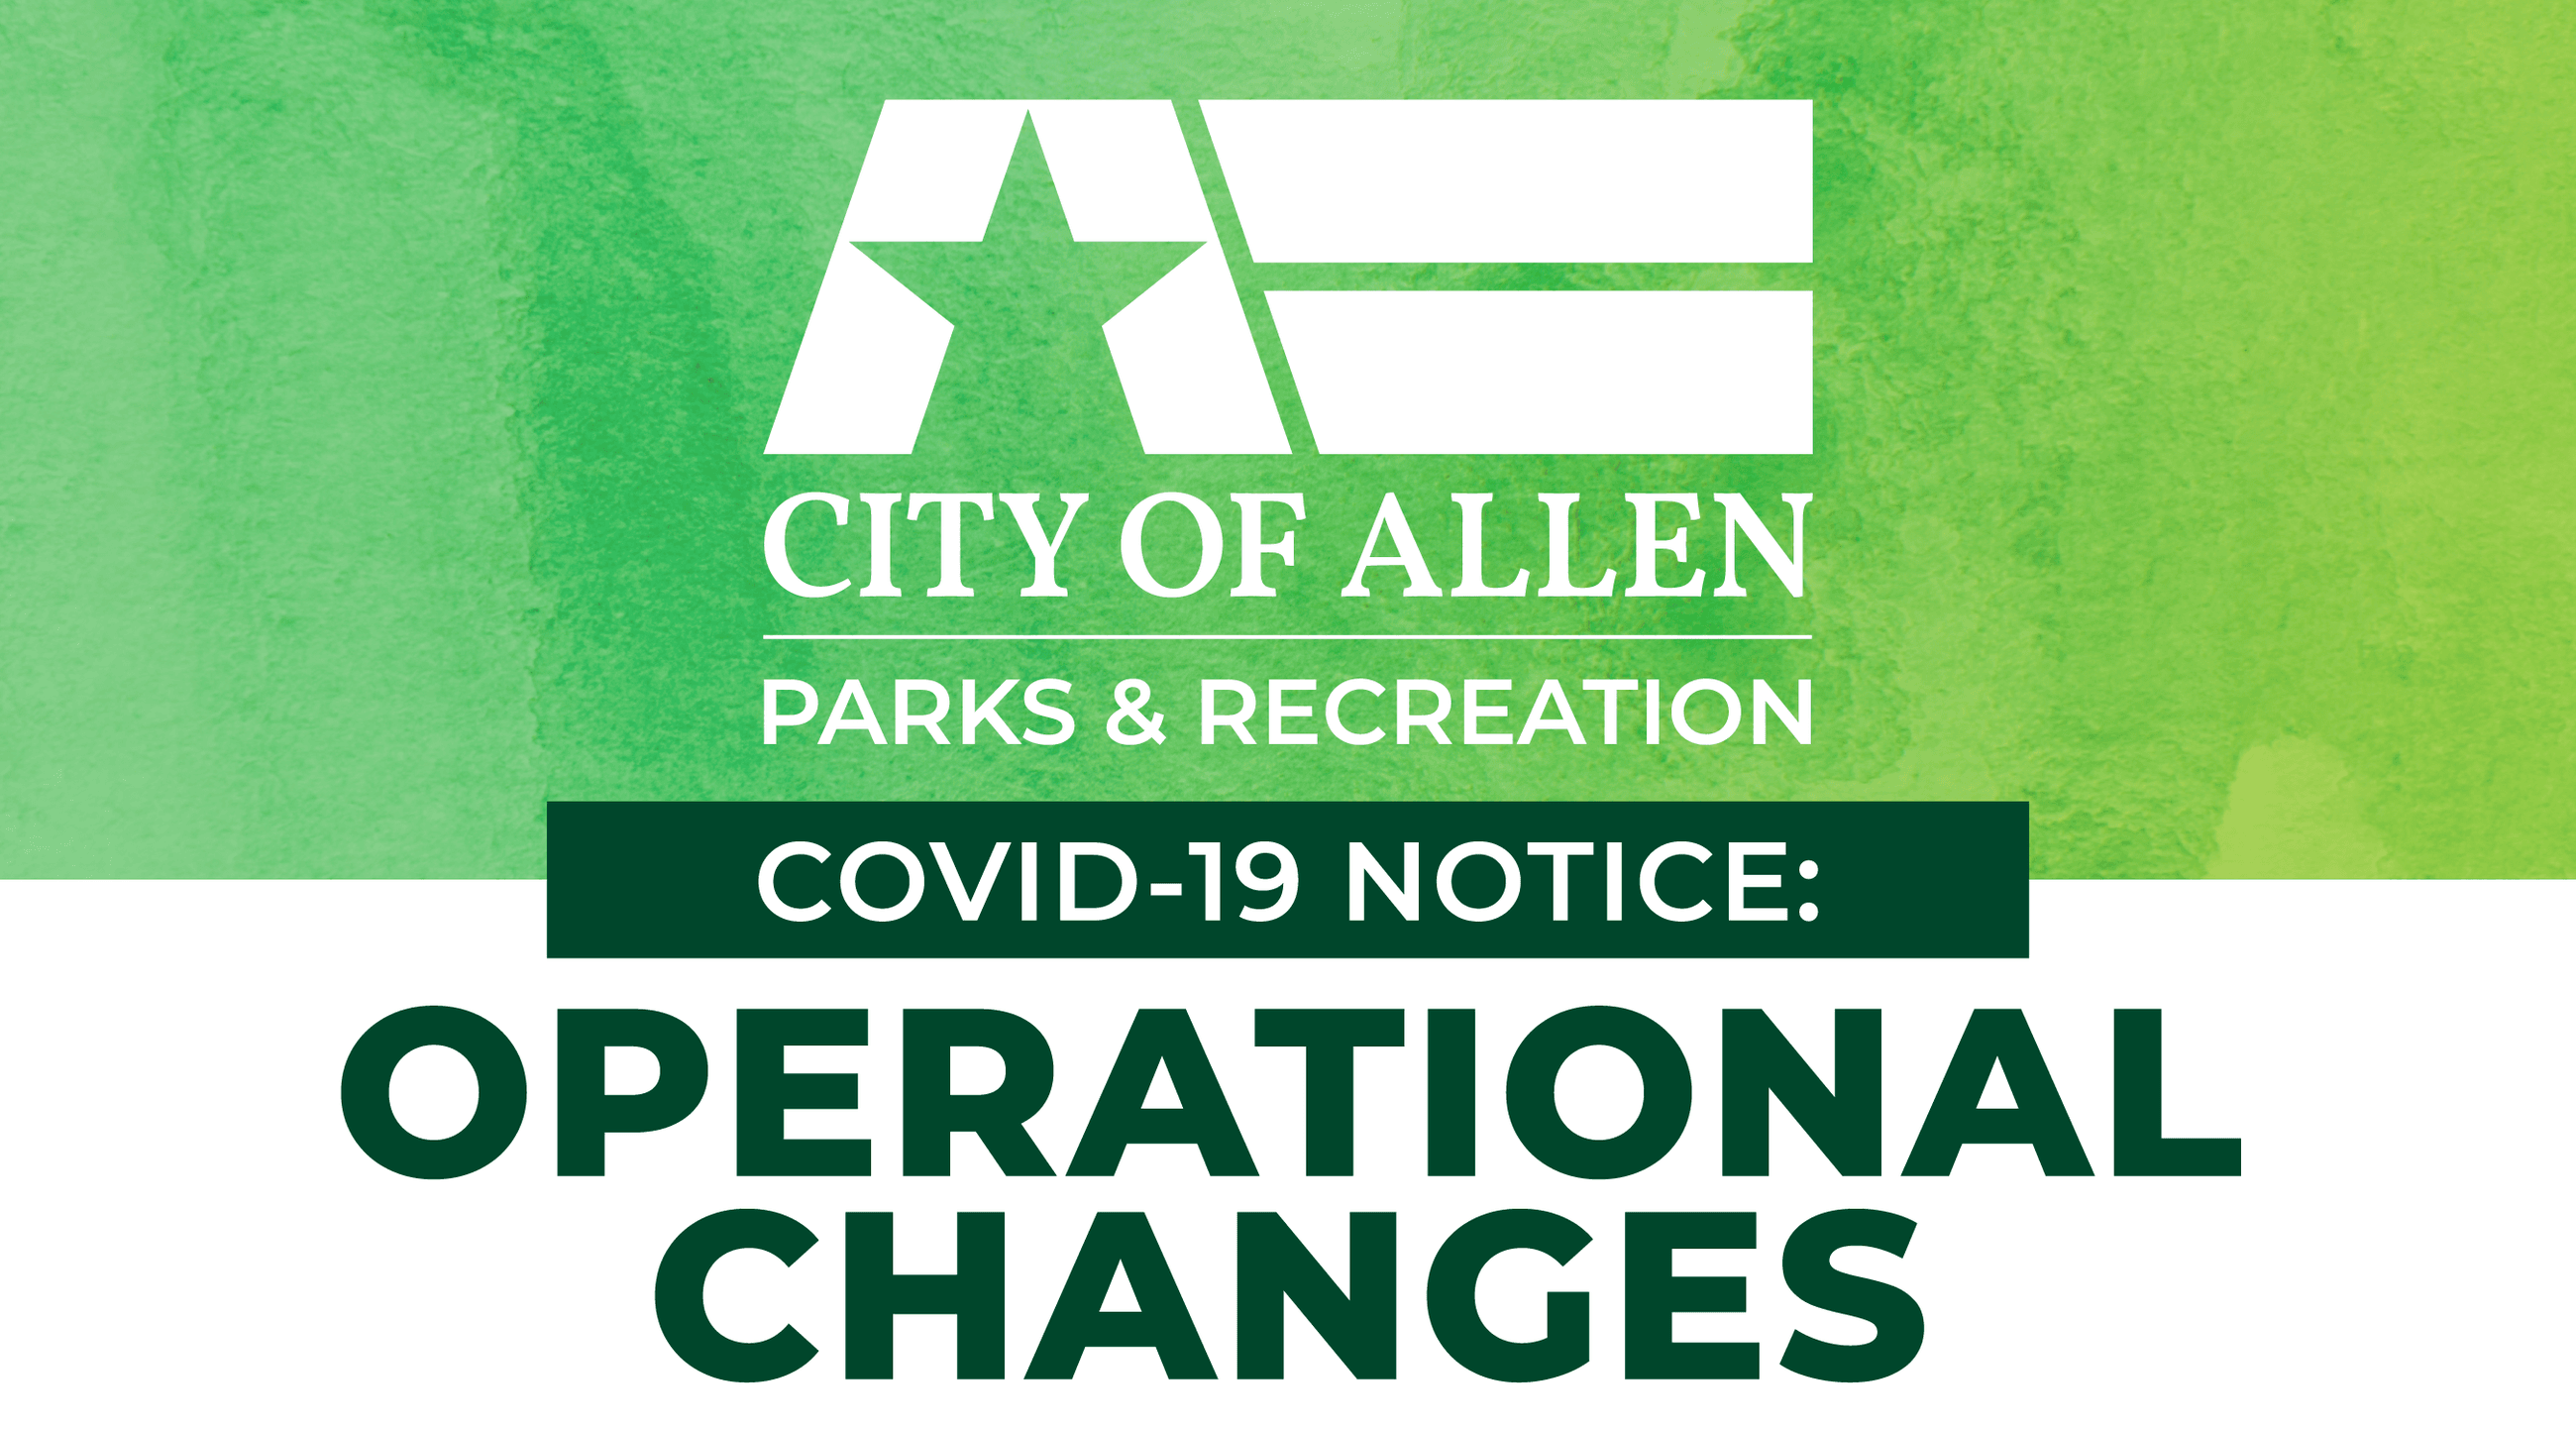 Allen Parks & Recreation offers information on department operations following COVID-19 outbreak